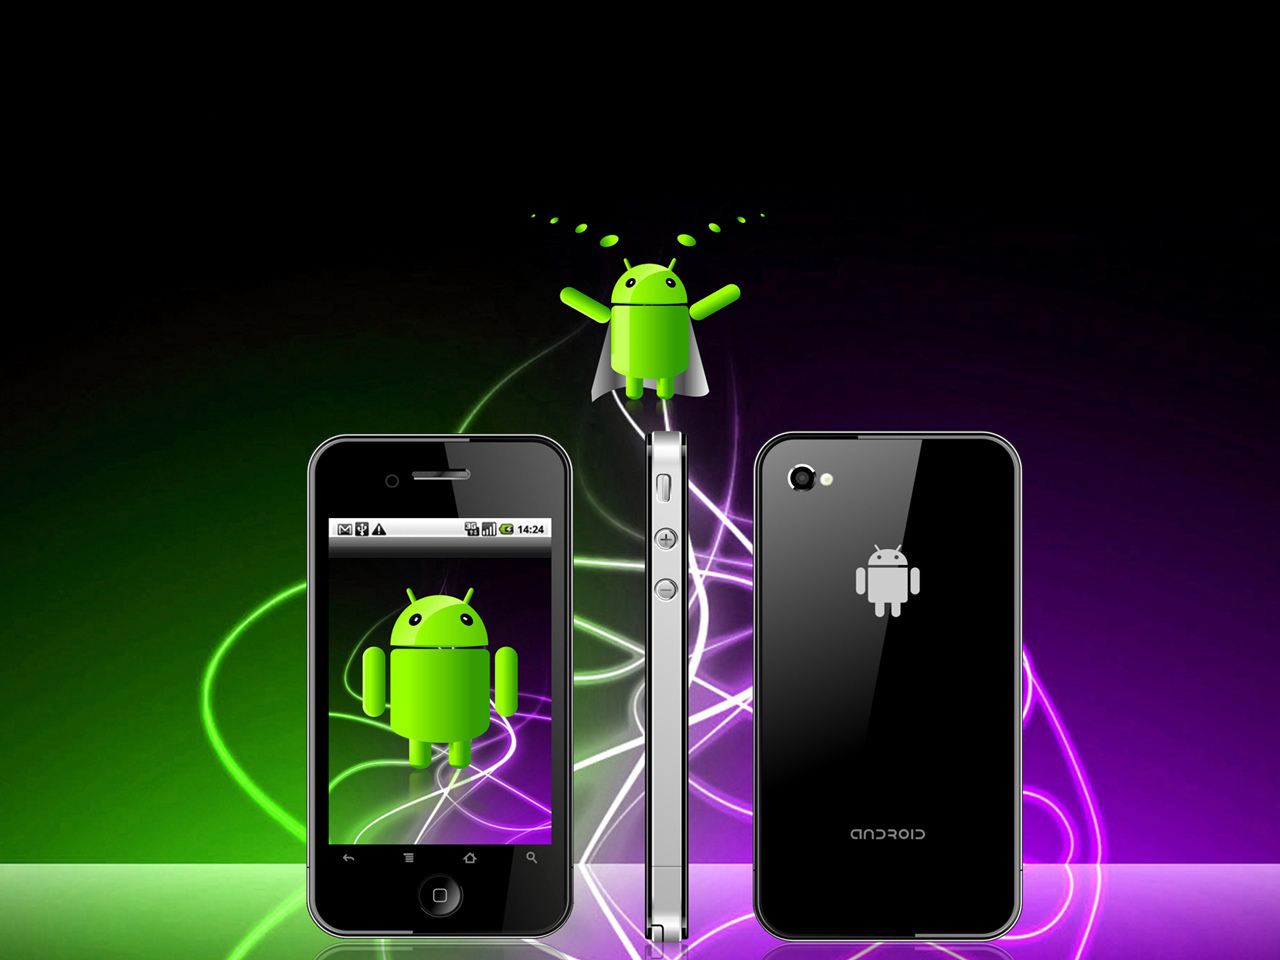 android phones free - photo #24